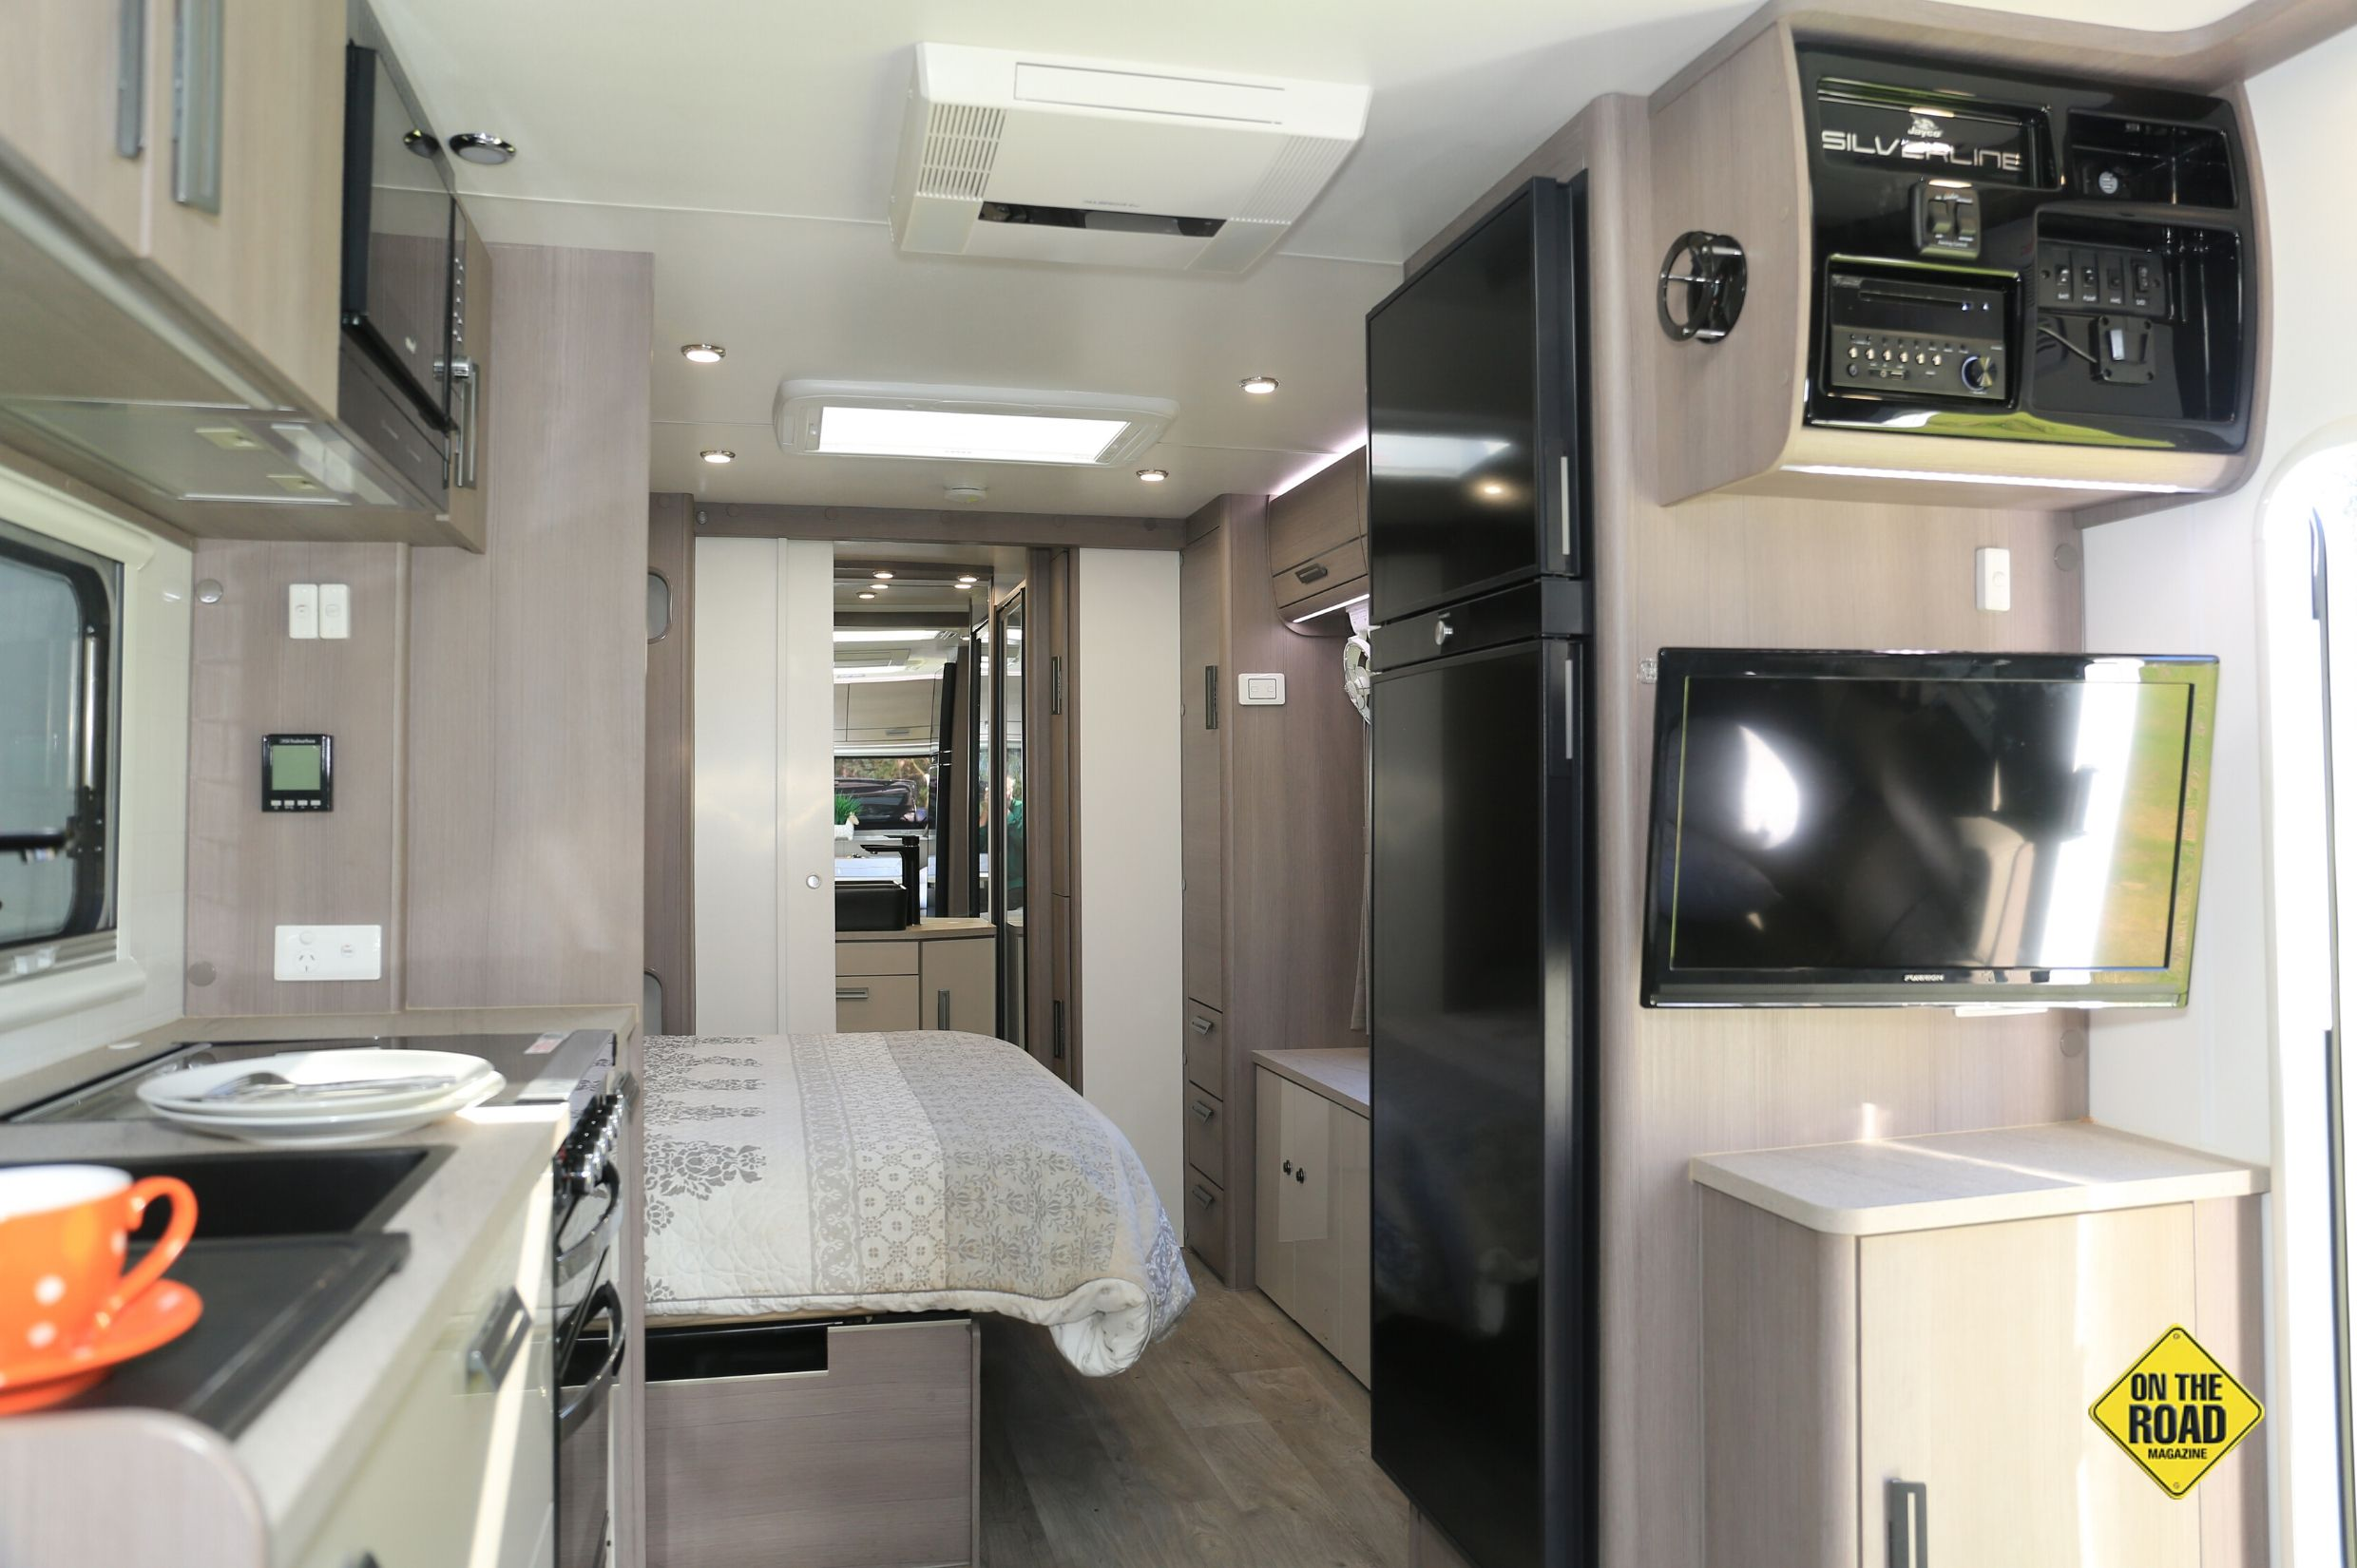 Modern spacious wellfinished the Jayco has everything you could want